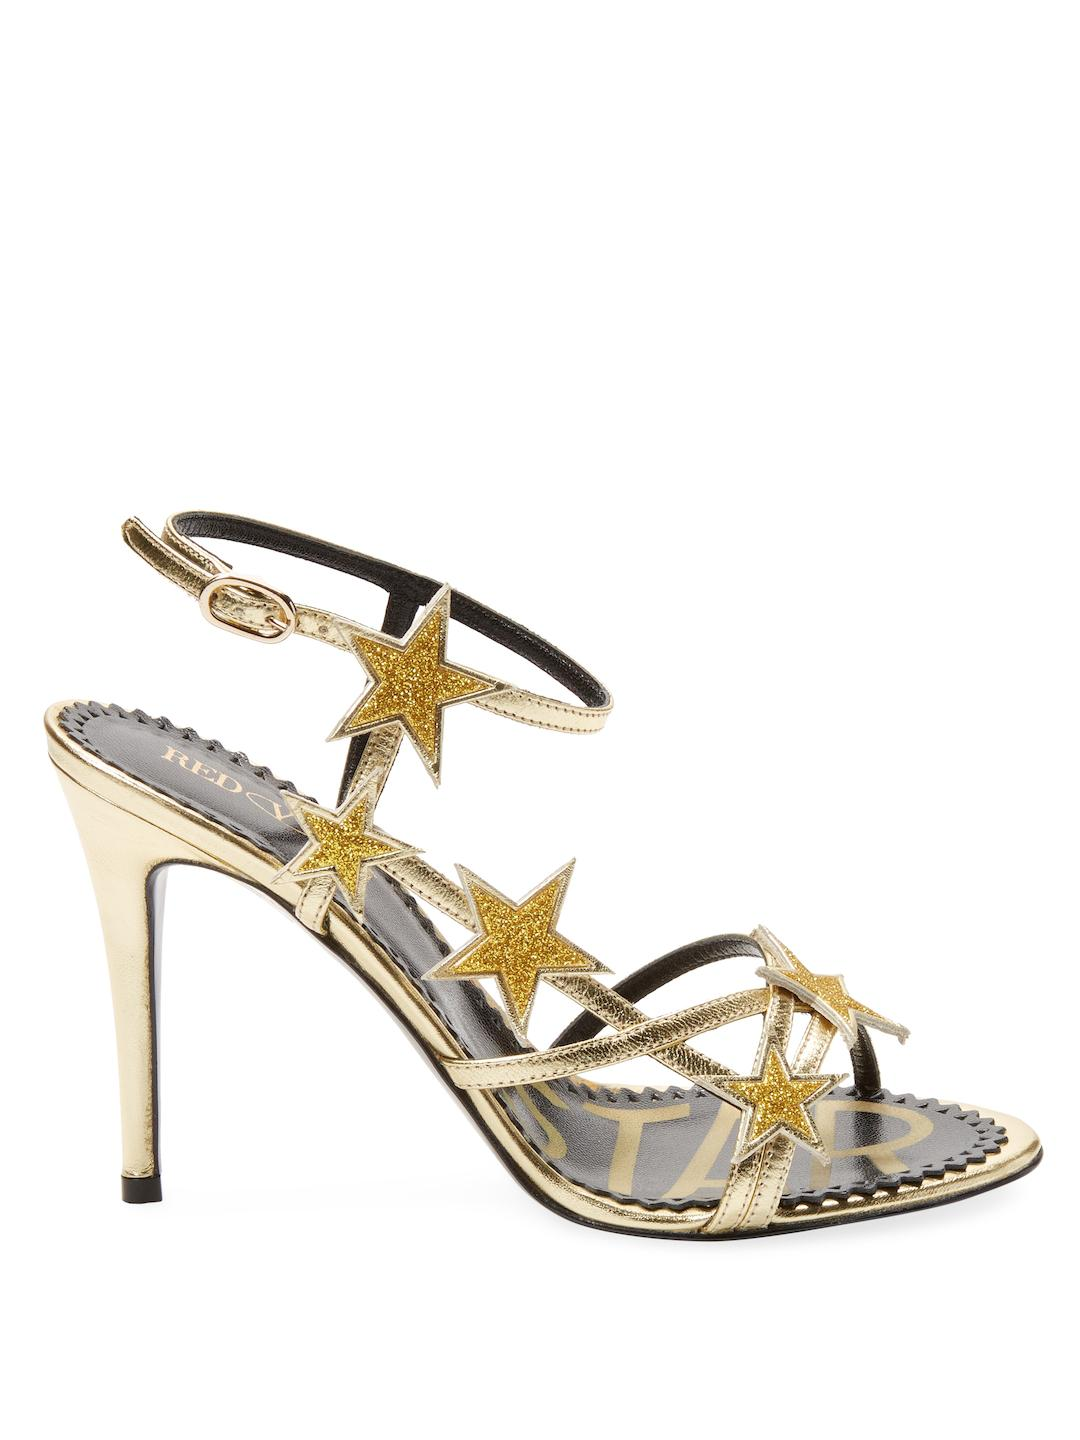 7849f518c1f5ef Lyst - RED Valentino Star Embellished Metallic Leather Sandals in ...